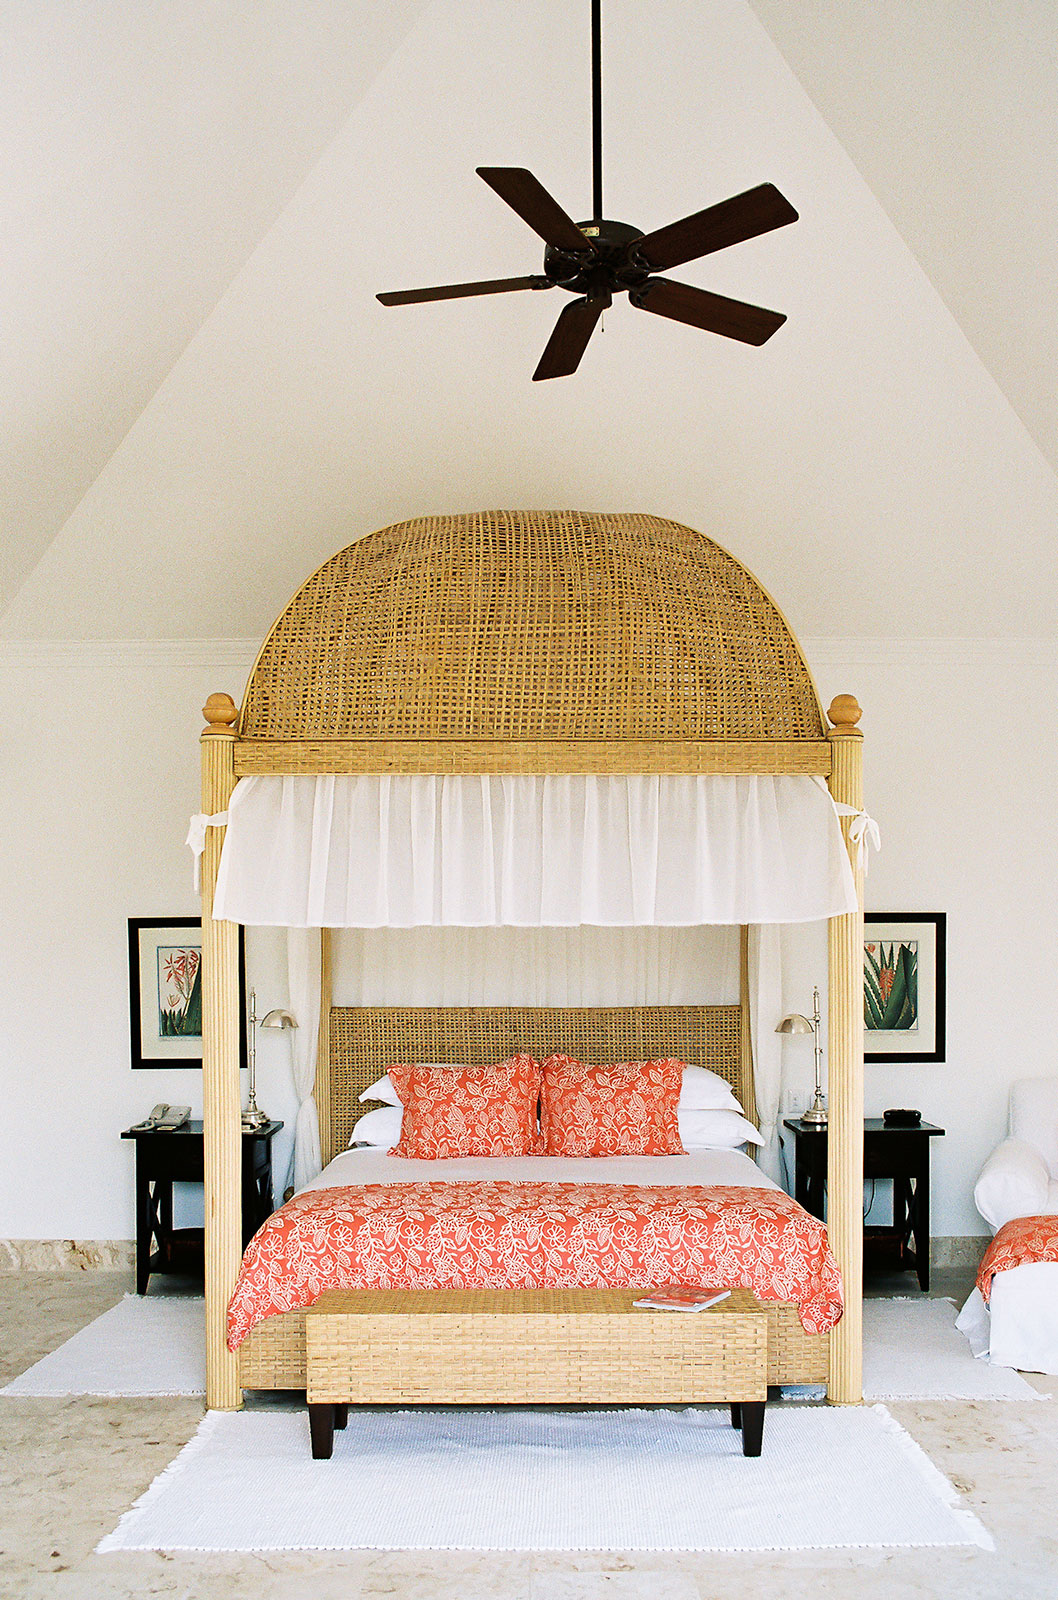 150124_cjz_Punta-Cana_Orange-Room